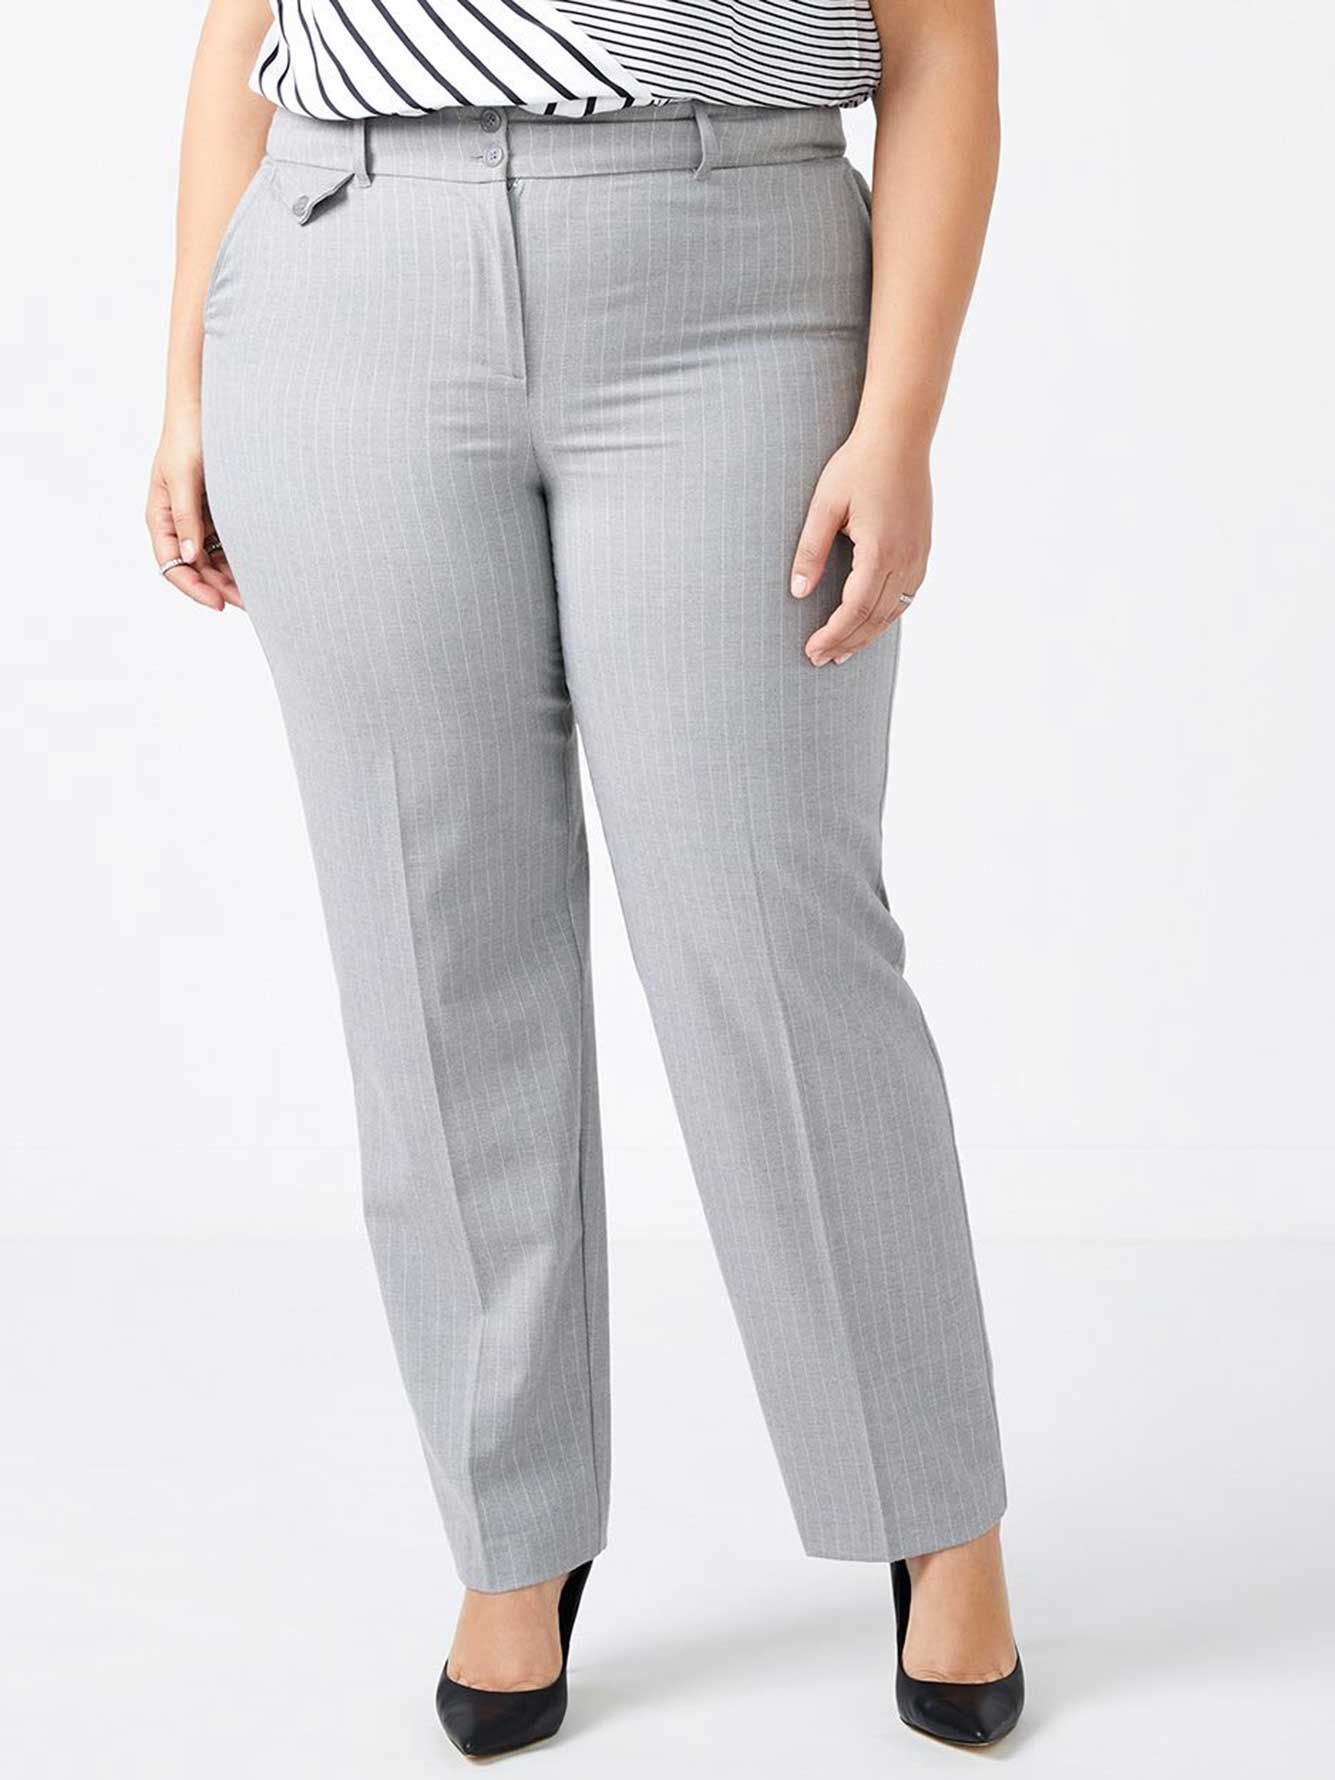 ONLINE ONLY - Tall Straight Fit Patterned Straight Leg Pant